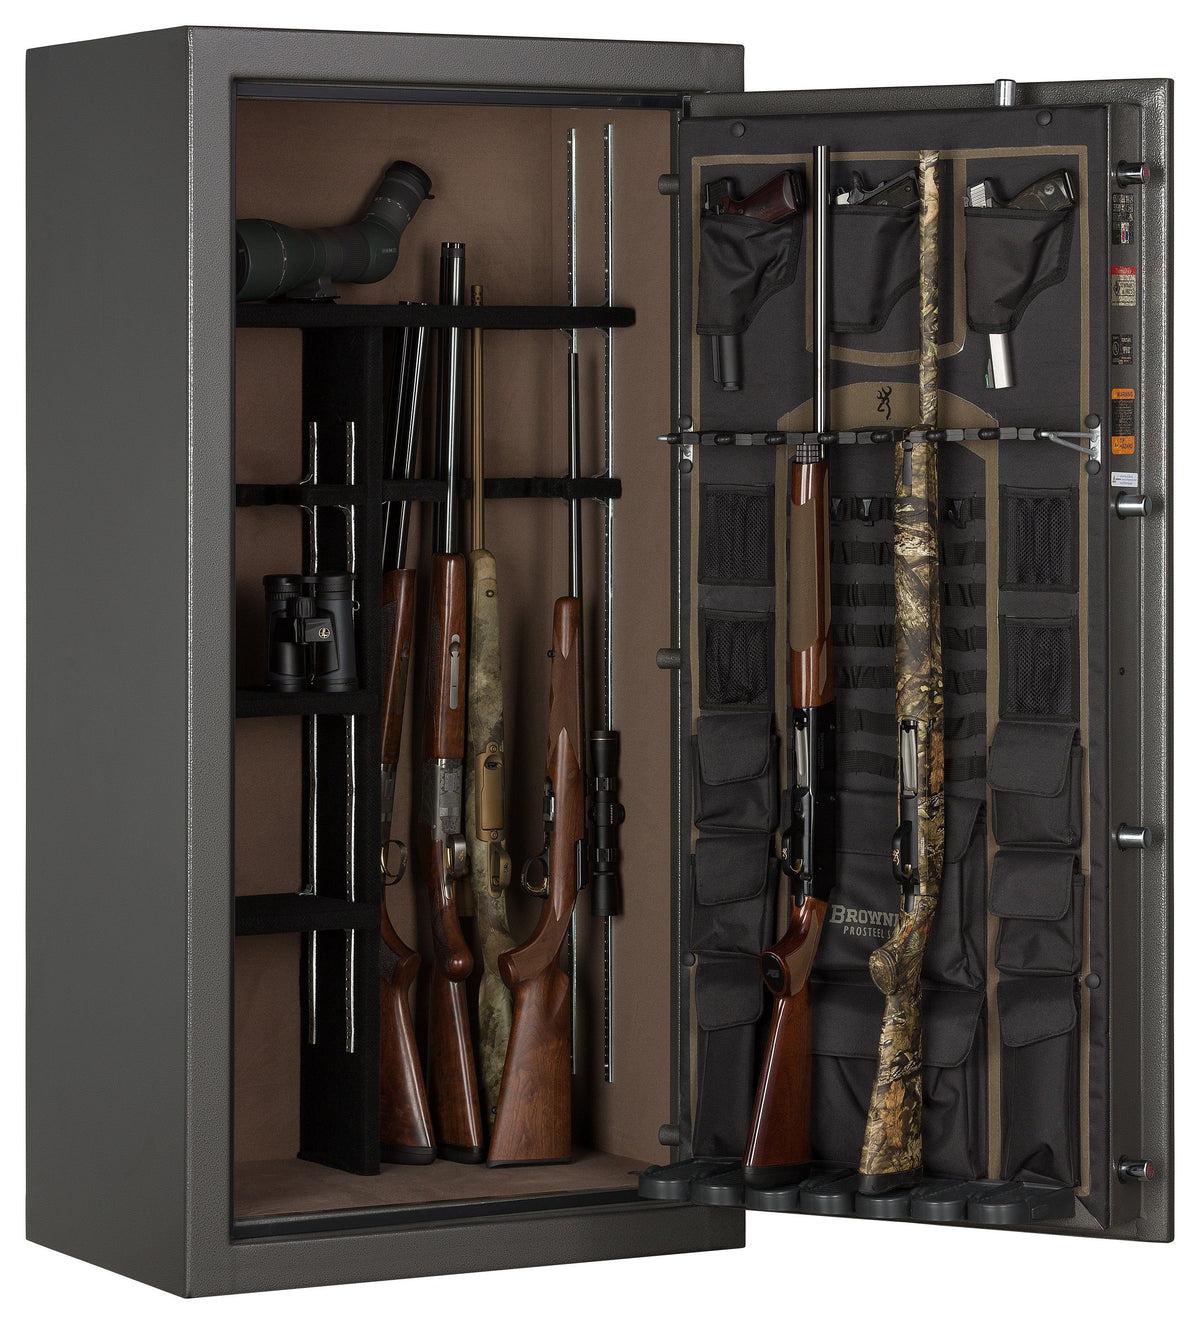 Gun Safes & Rifle Safe Products - Browning SP23 Core Collection Sporter Gun Safe Hammer Gloss Gray - 2021 Model